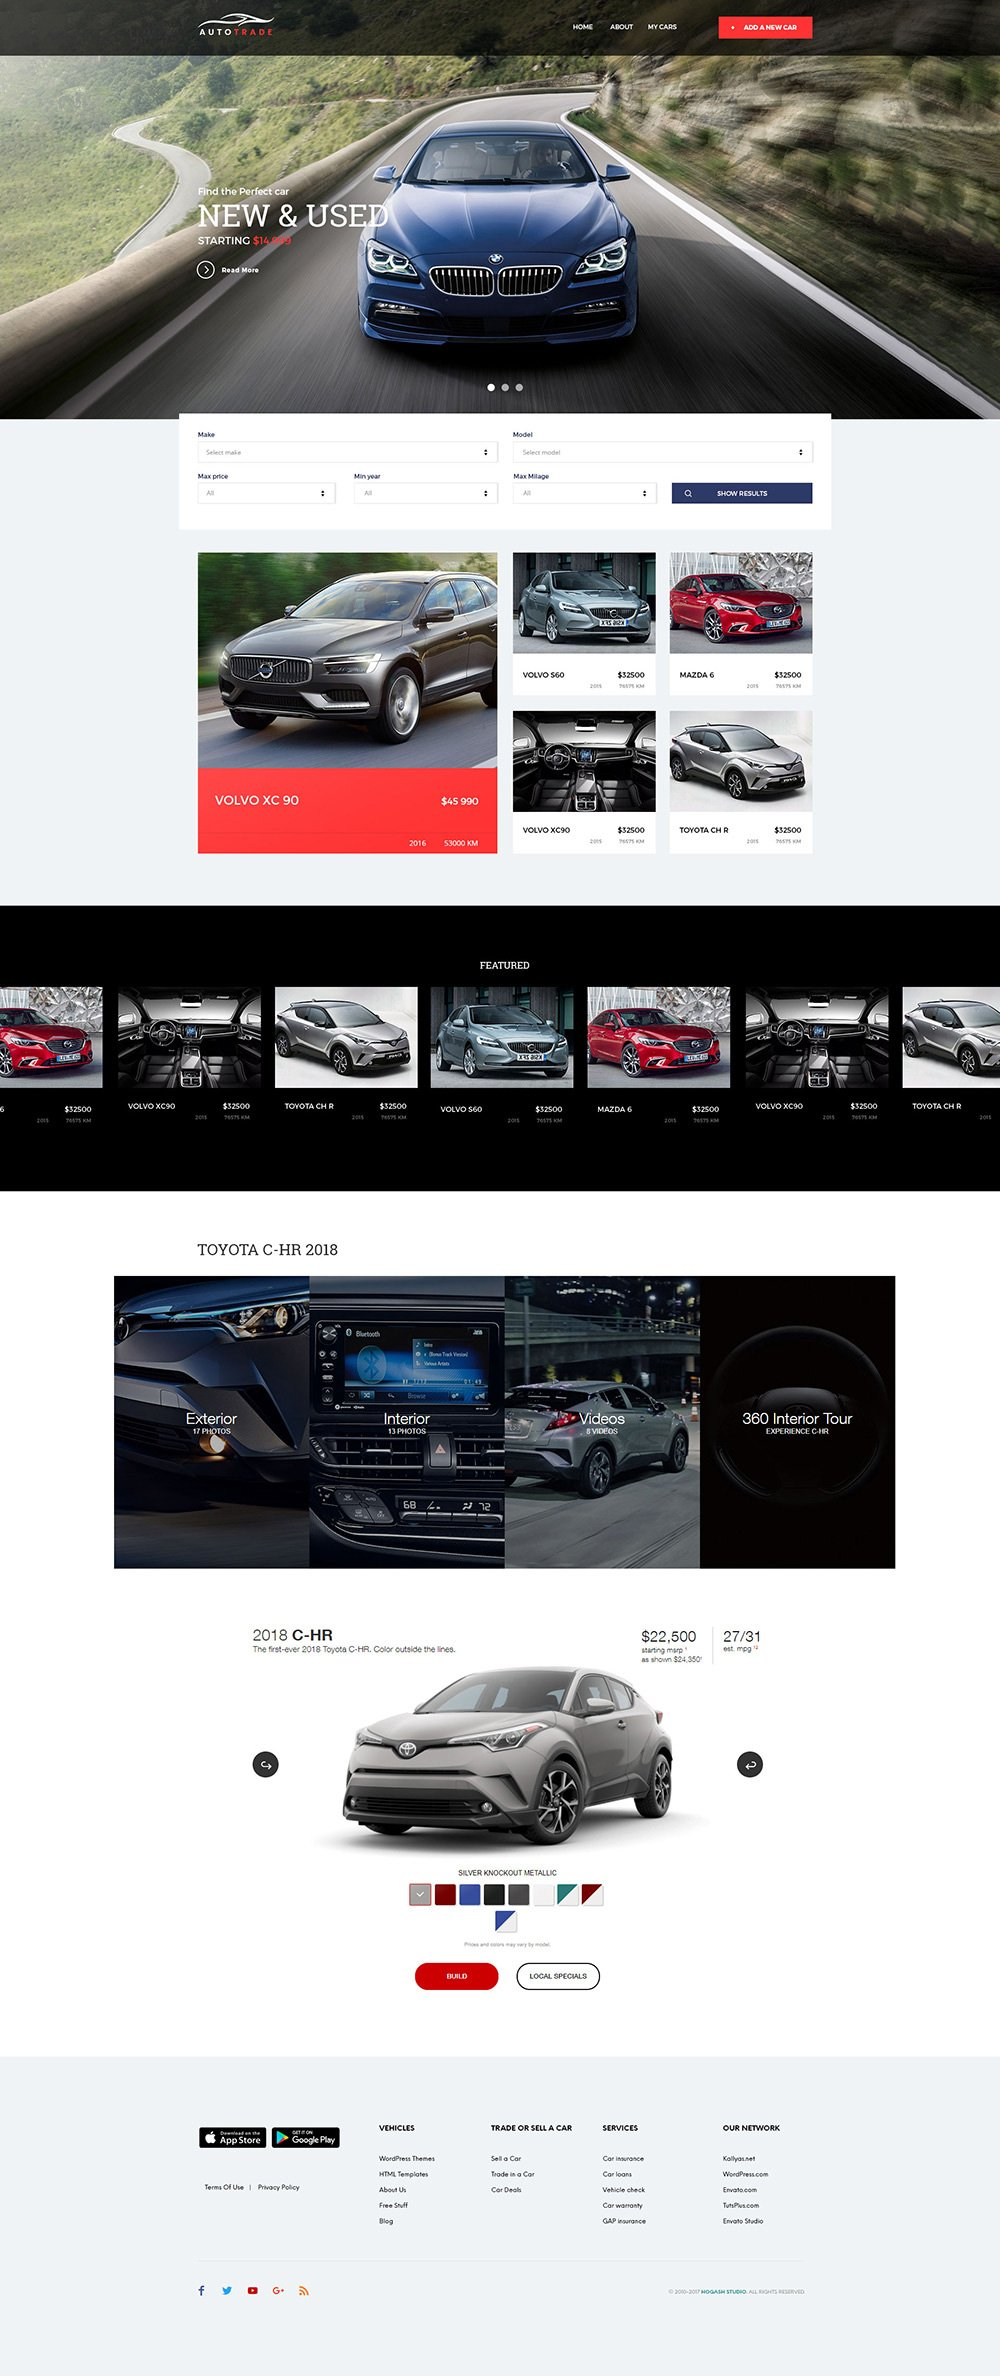 AutoTrader - Free PSD Template